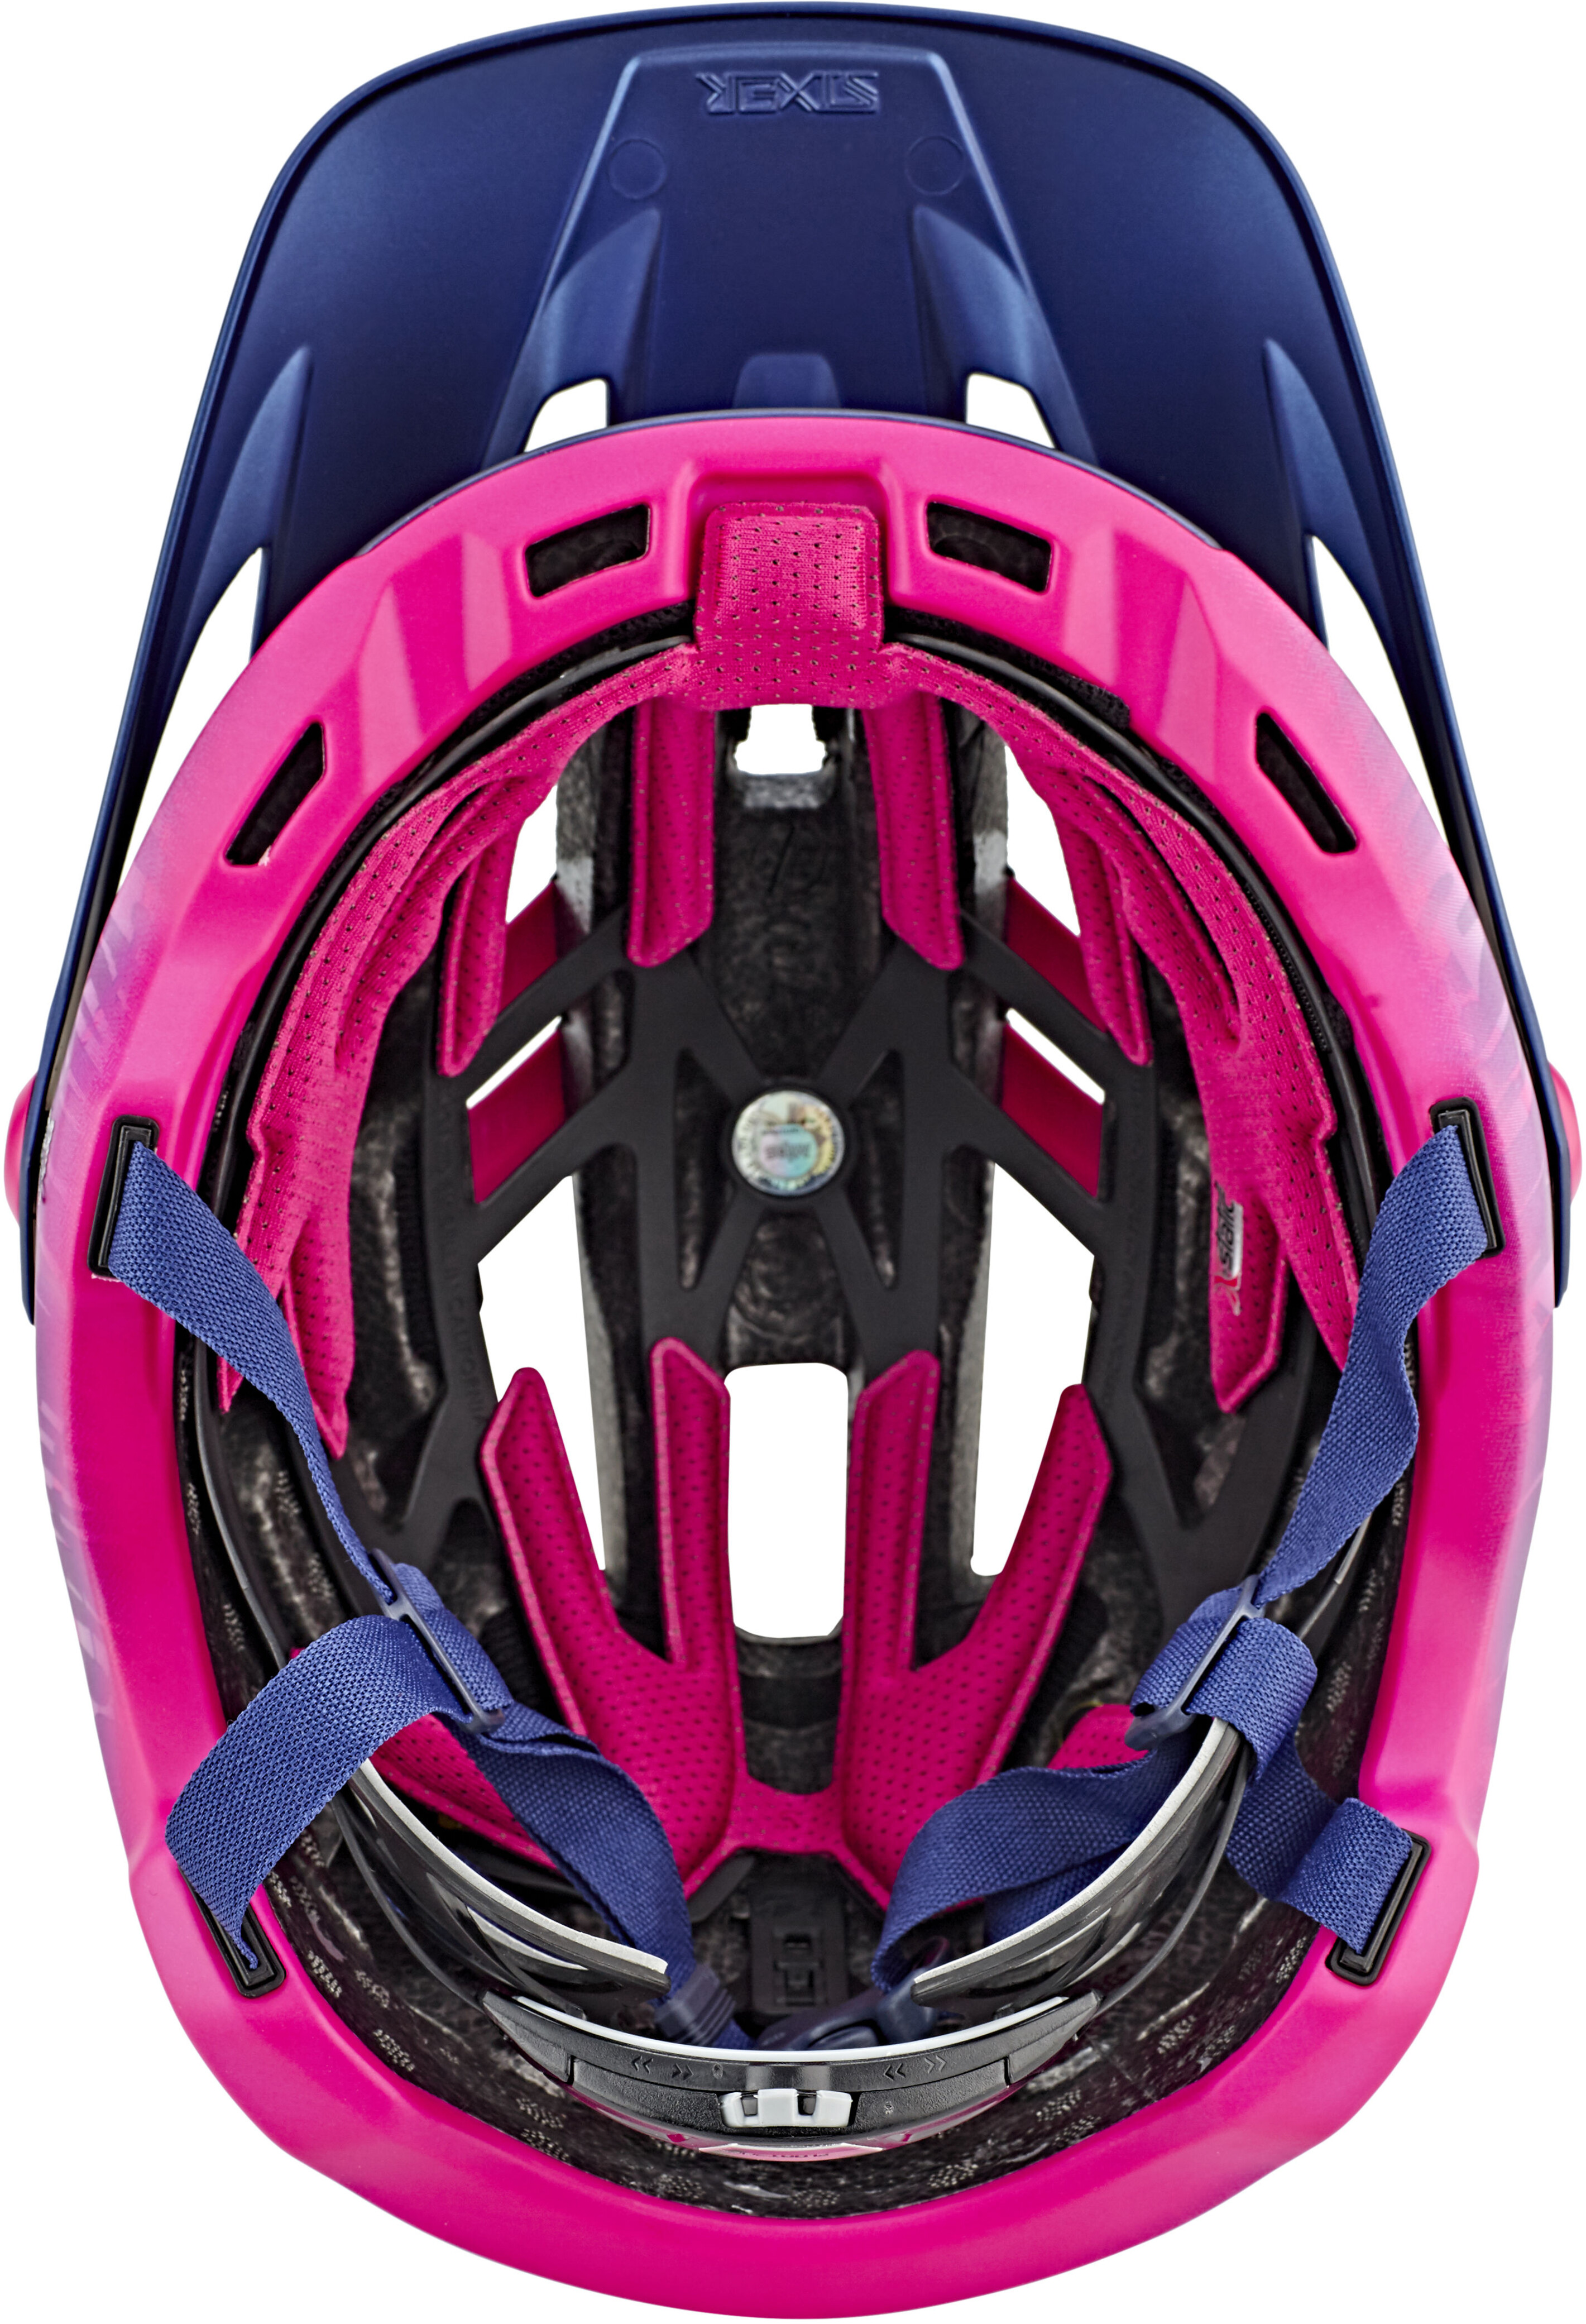 bell sixer mips joyride mtb helmet matte navy cherry online kaufen. Black Bedroom Furniture Sets. Home Design Ideas